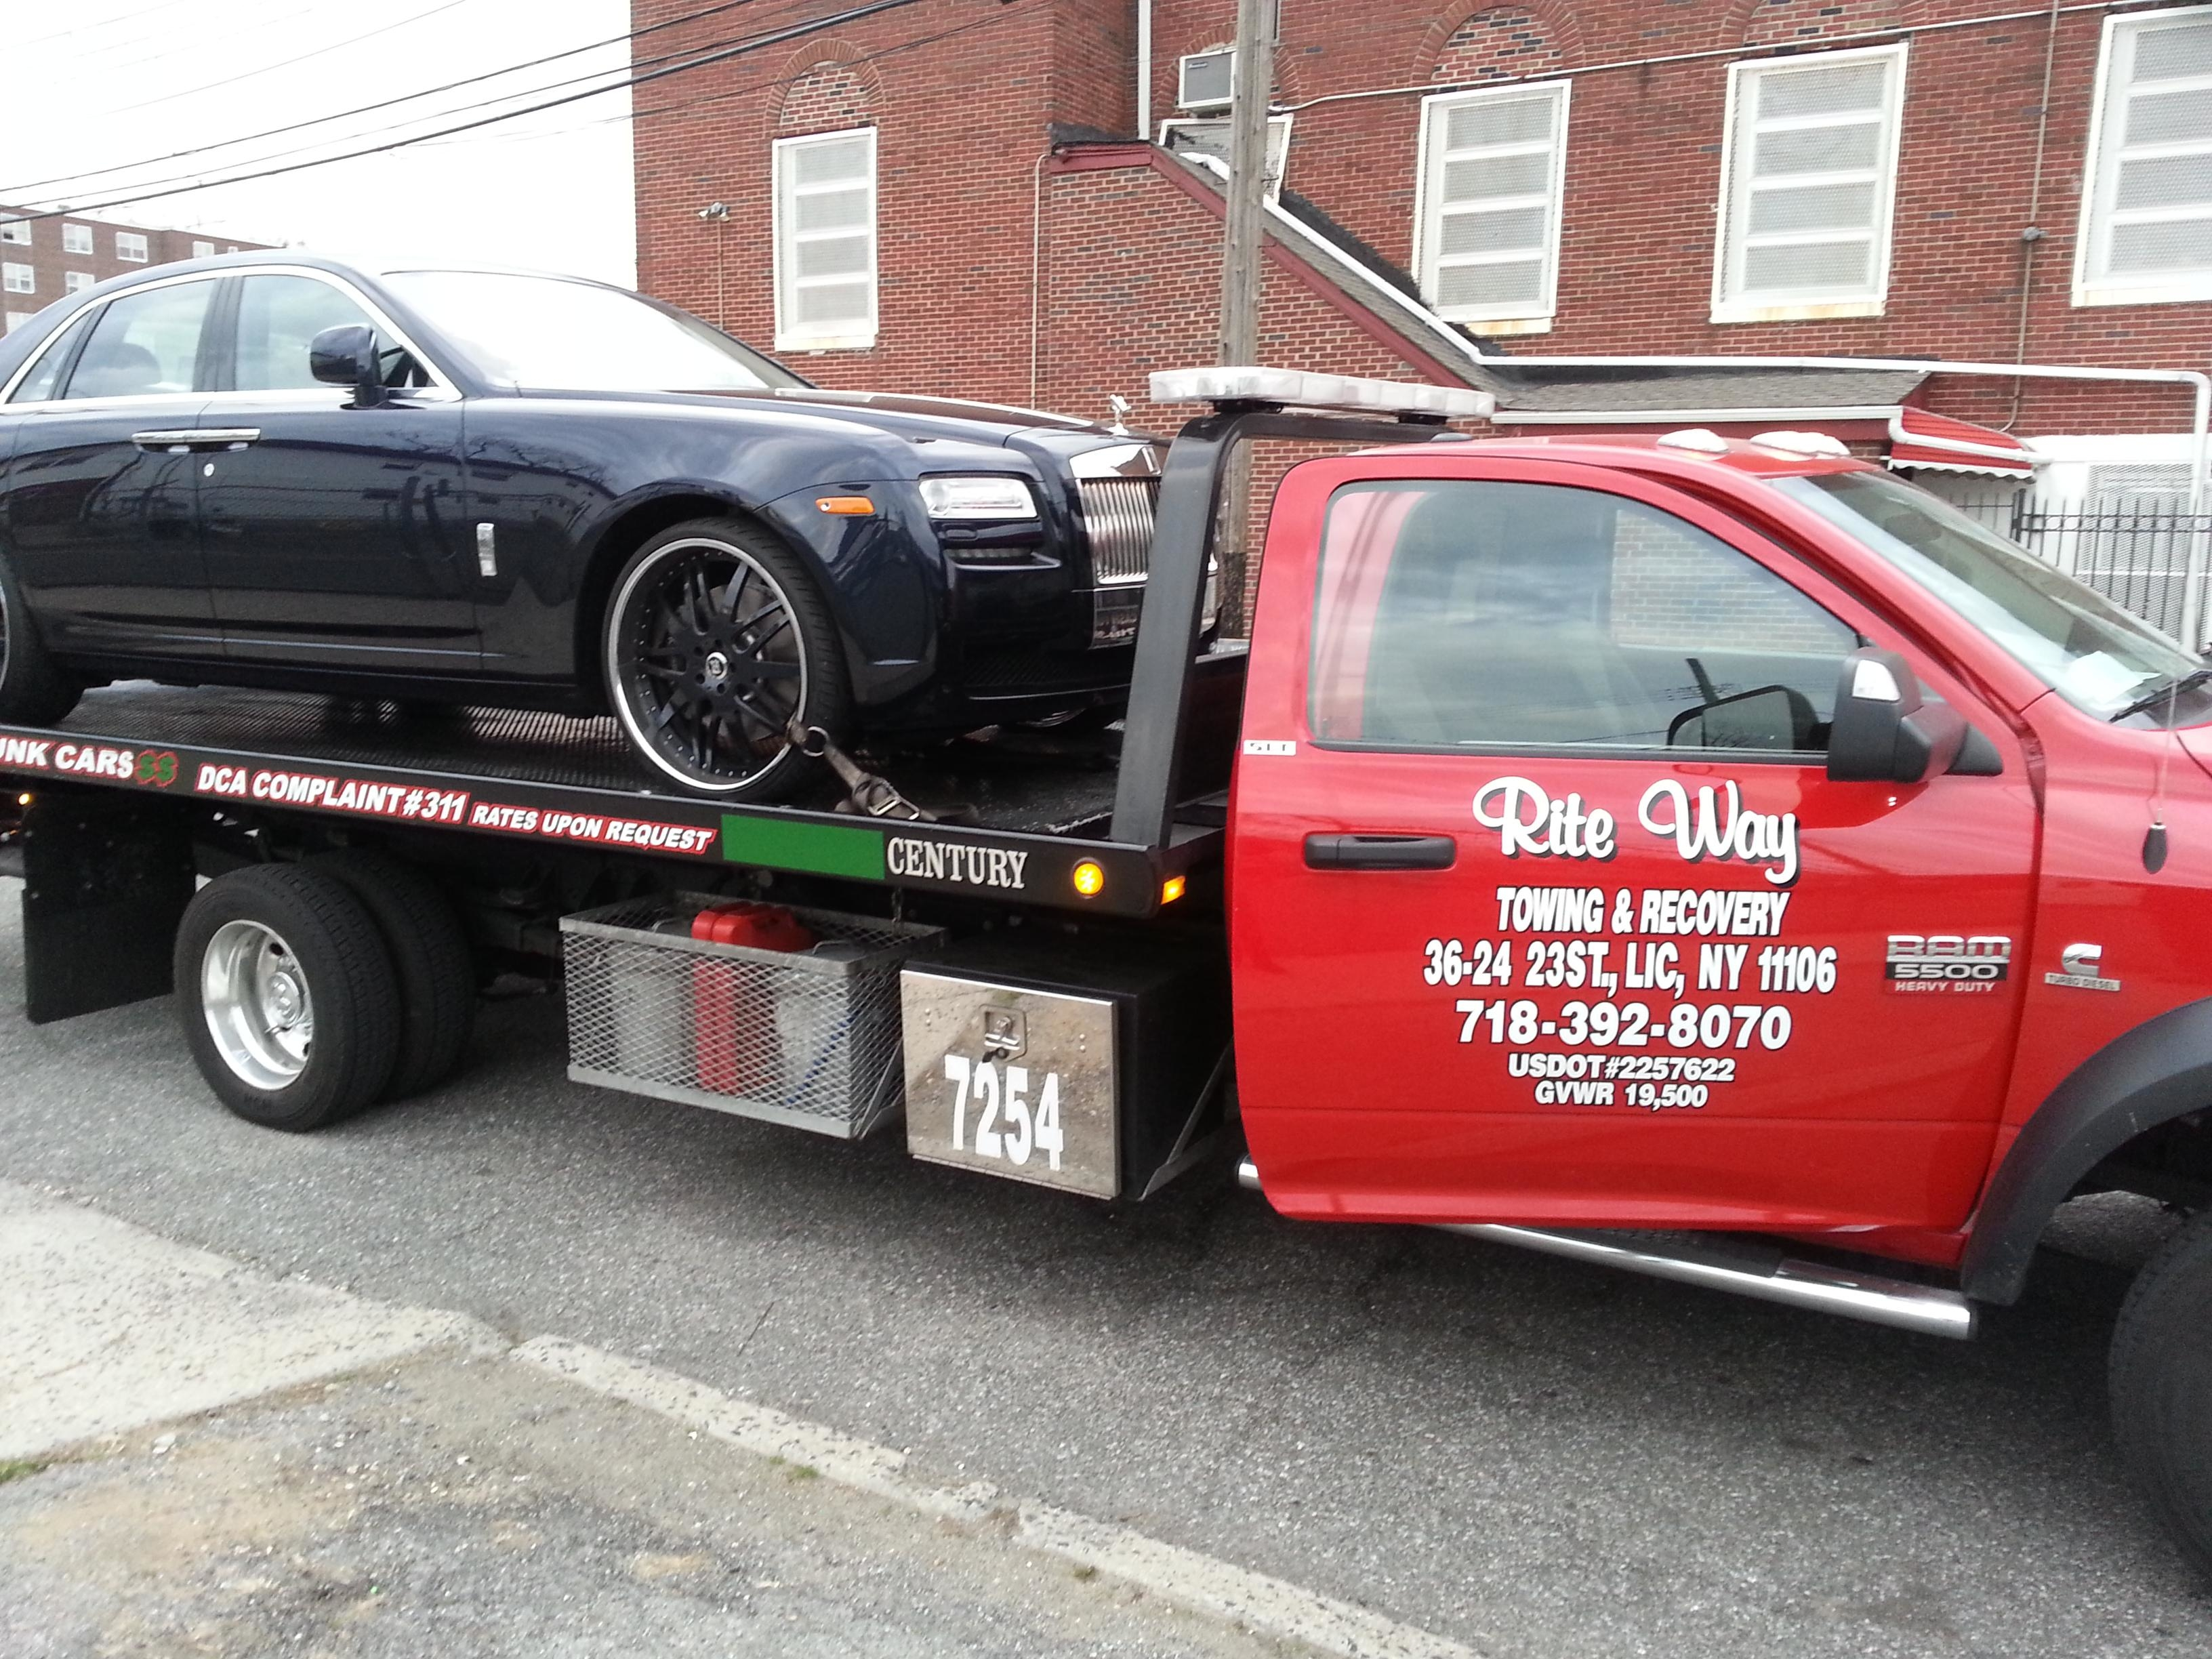 Rite Way Towing & Recovery Inc. of NYC